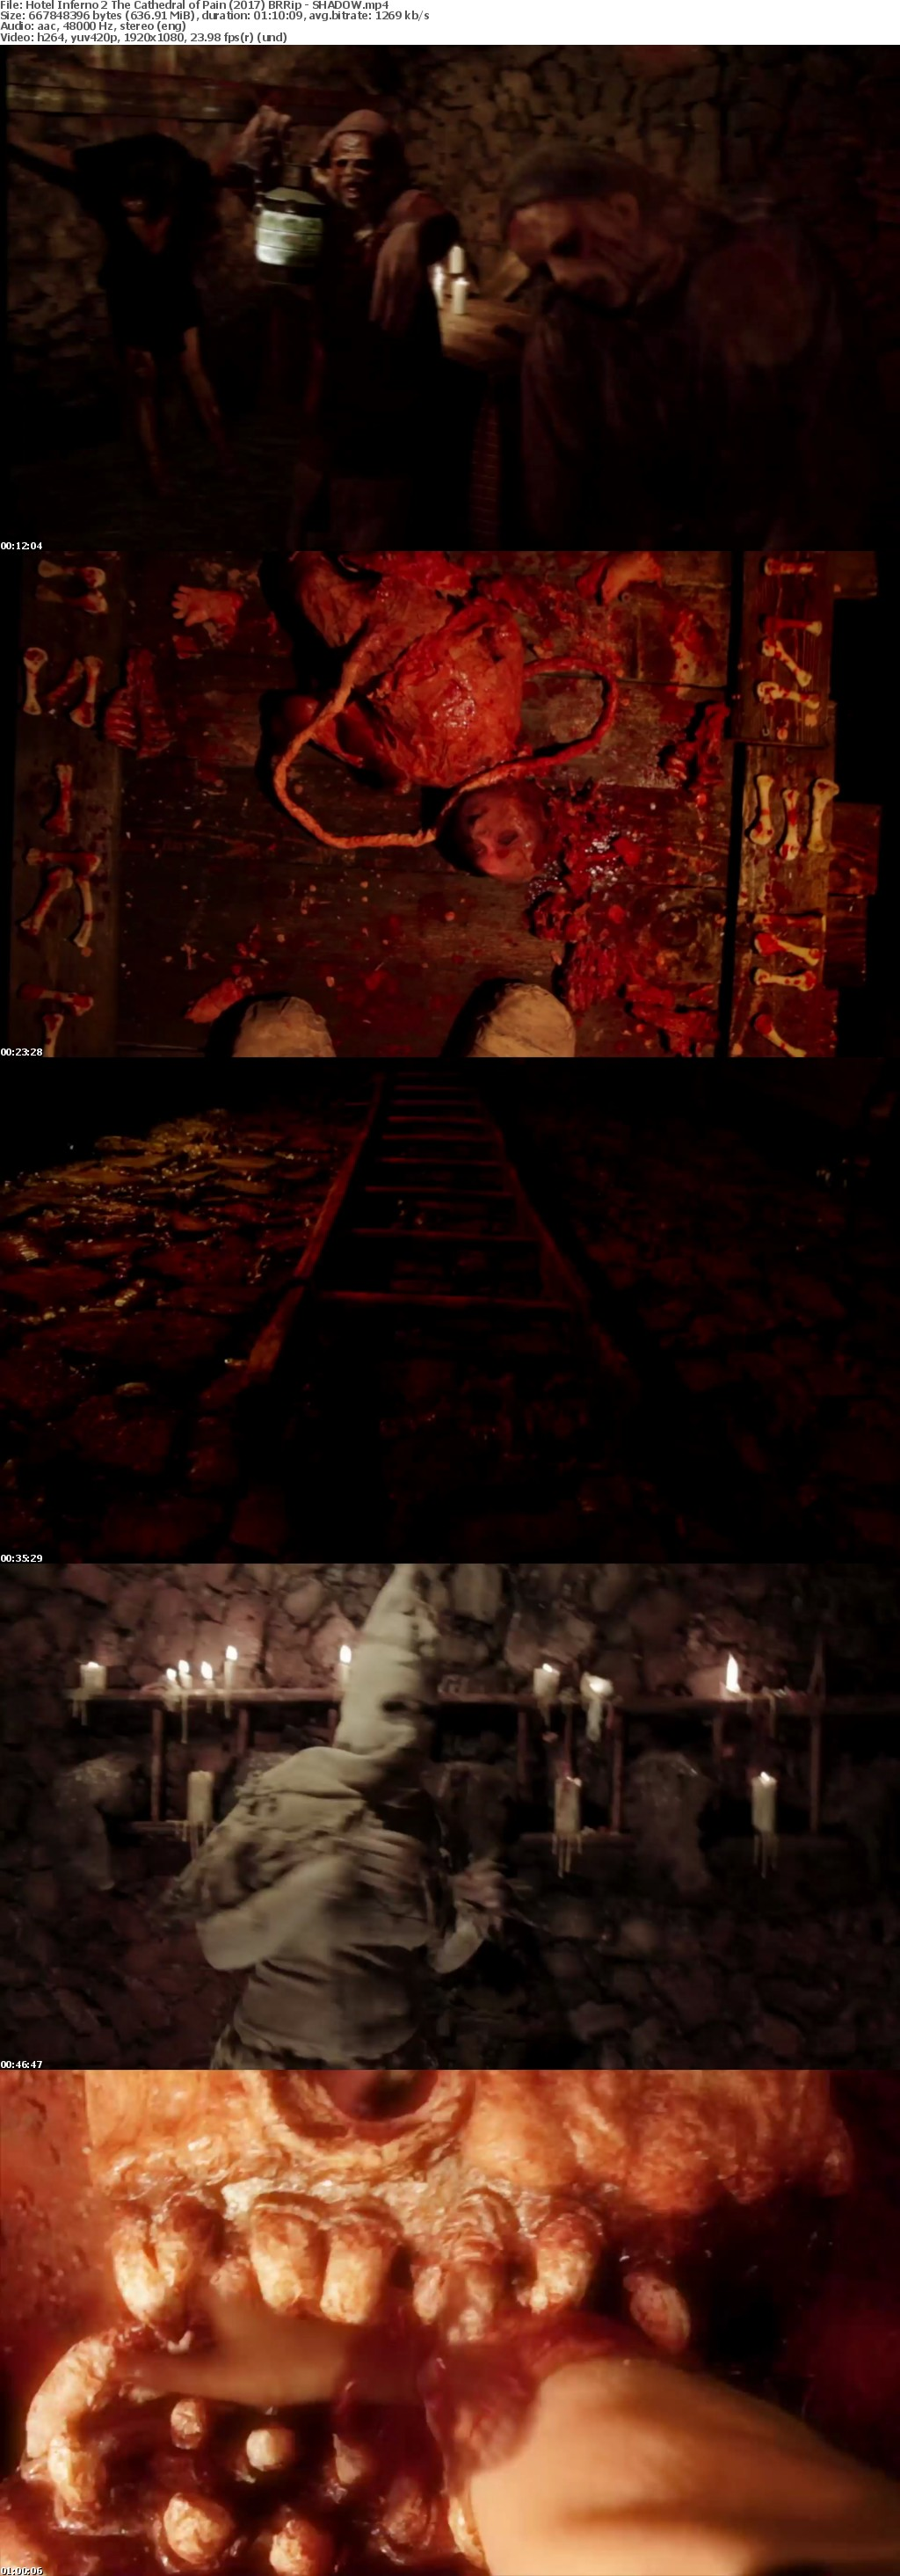 Hotel Inferno 2 The Cathedral of Pain (2017) BRRip - SHADOW[TGx]